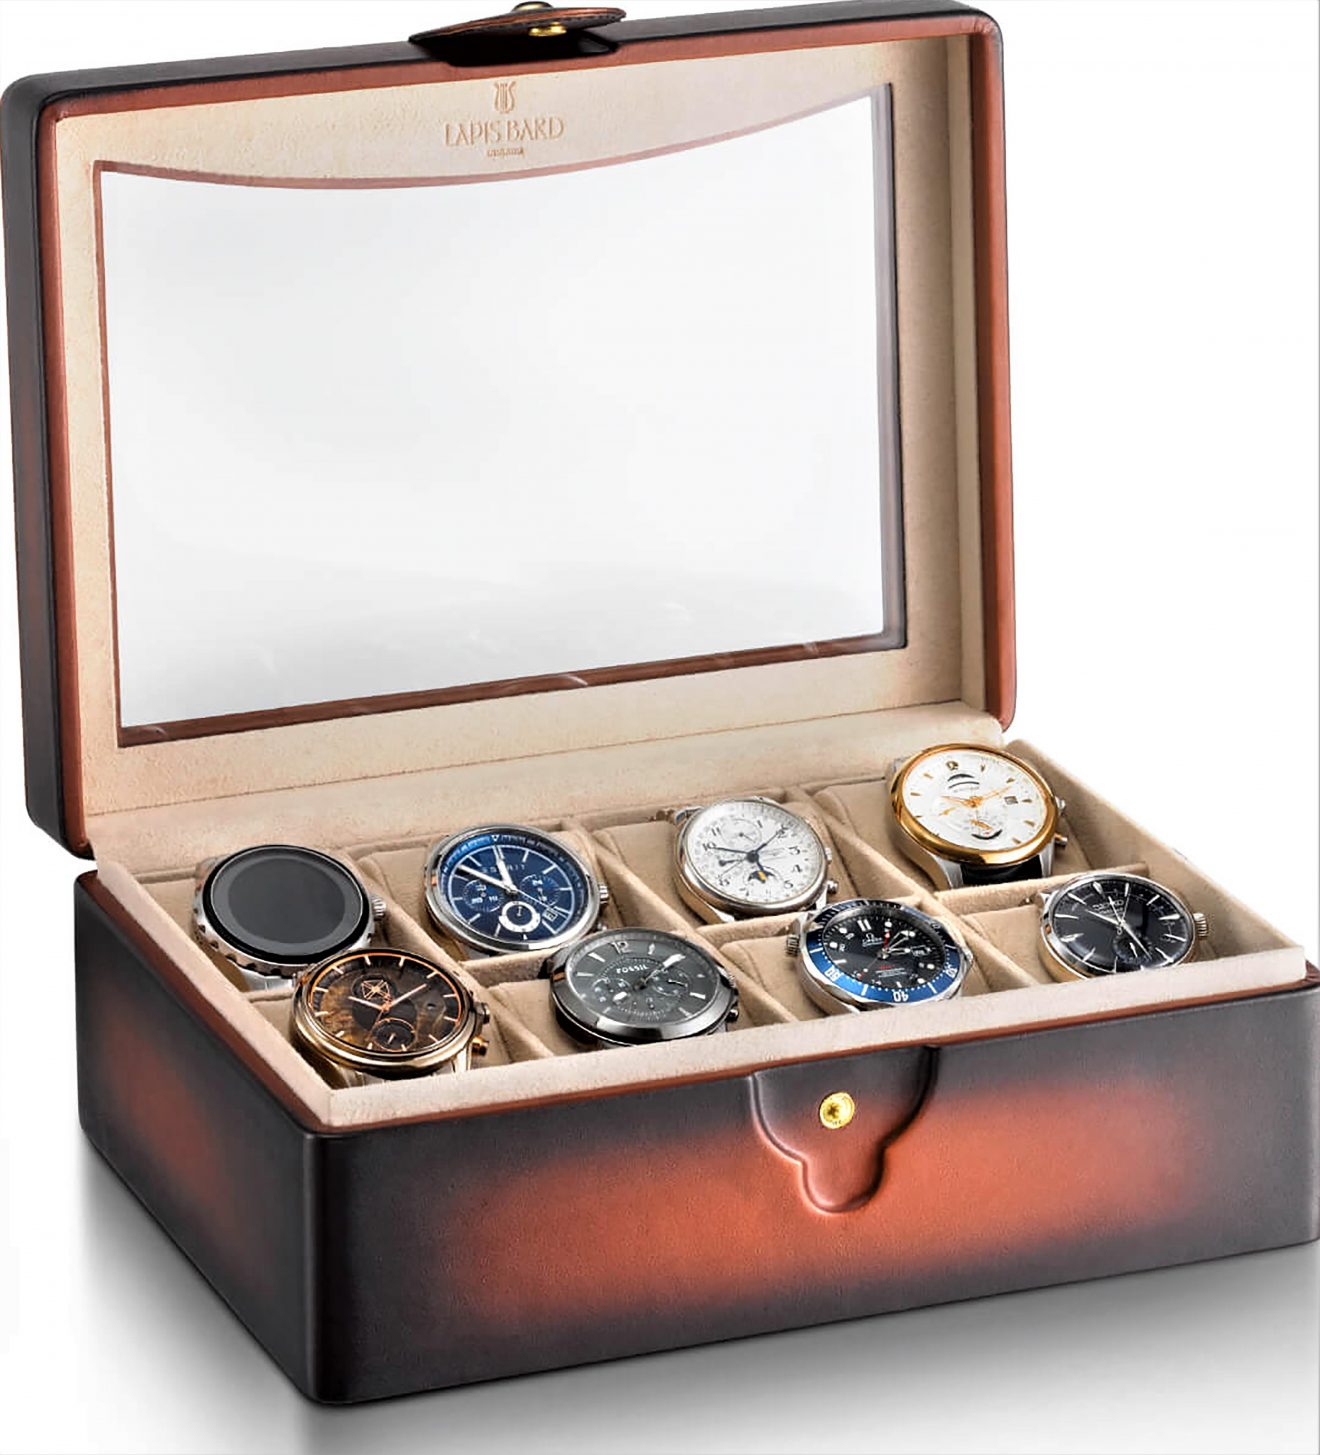 A Treasure Chest for your Watches and Pens - Lapis Bard